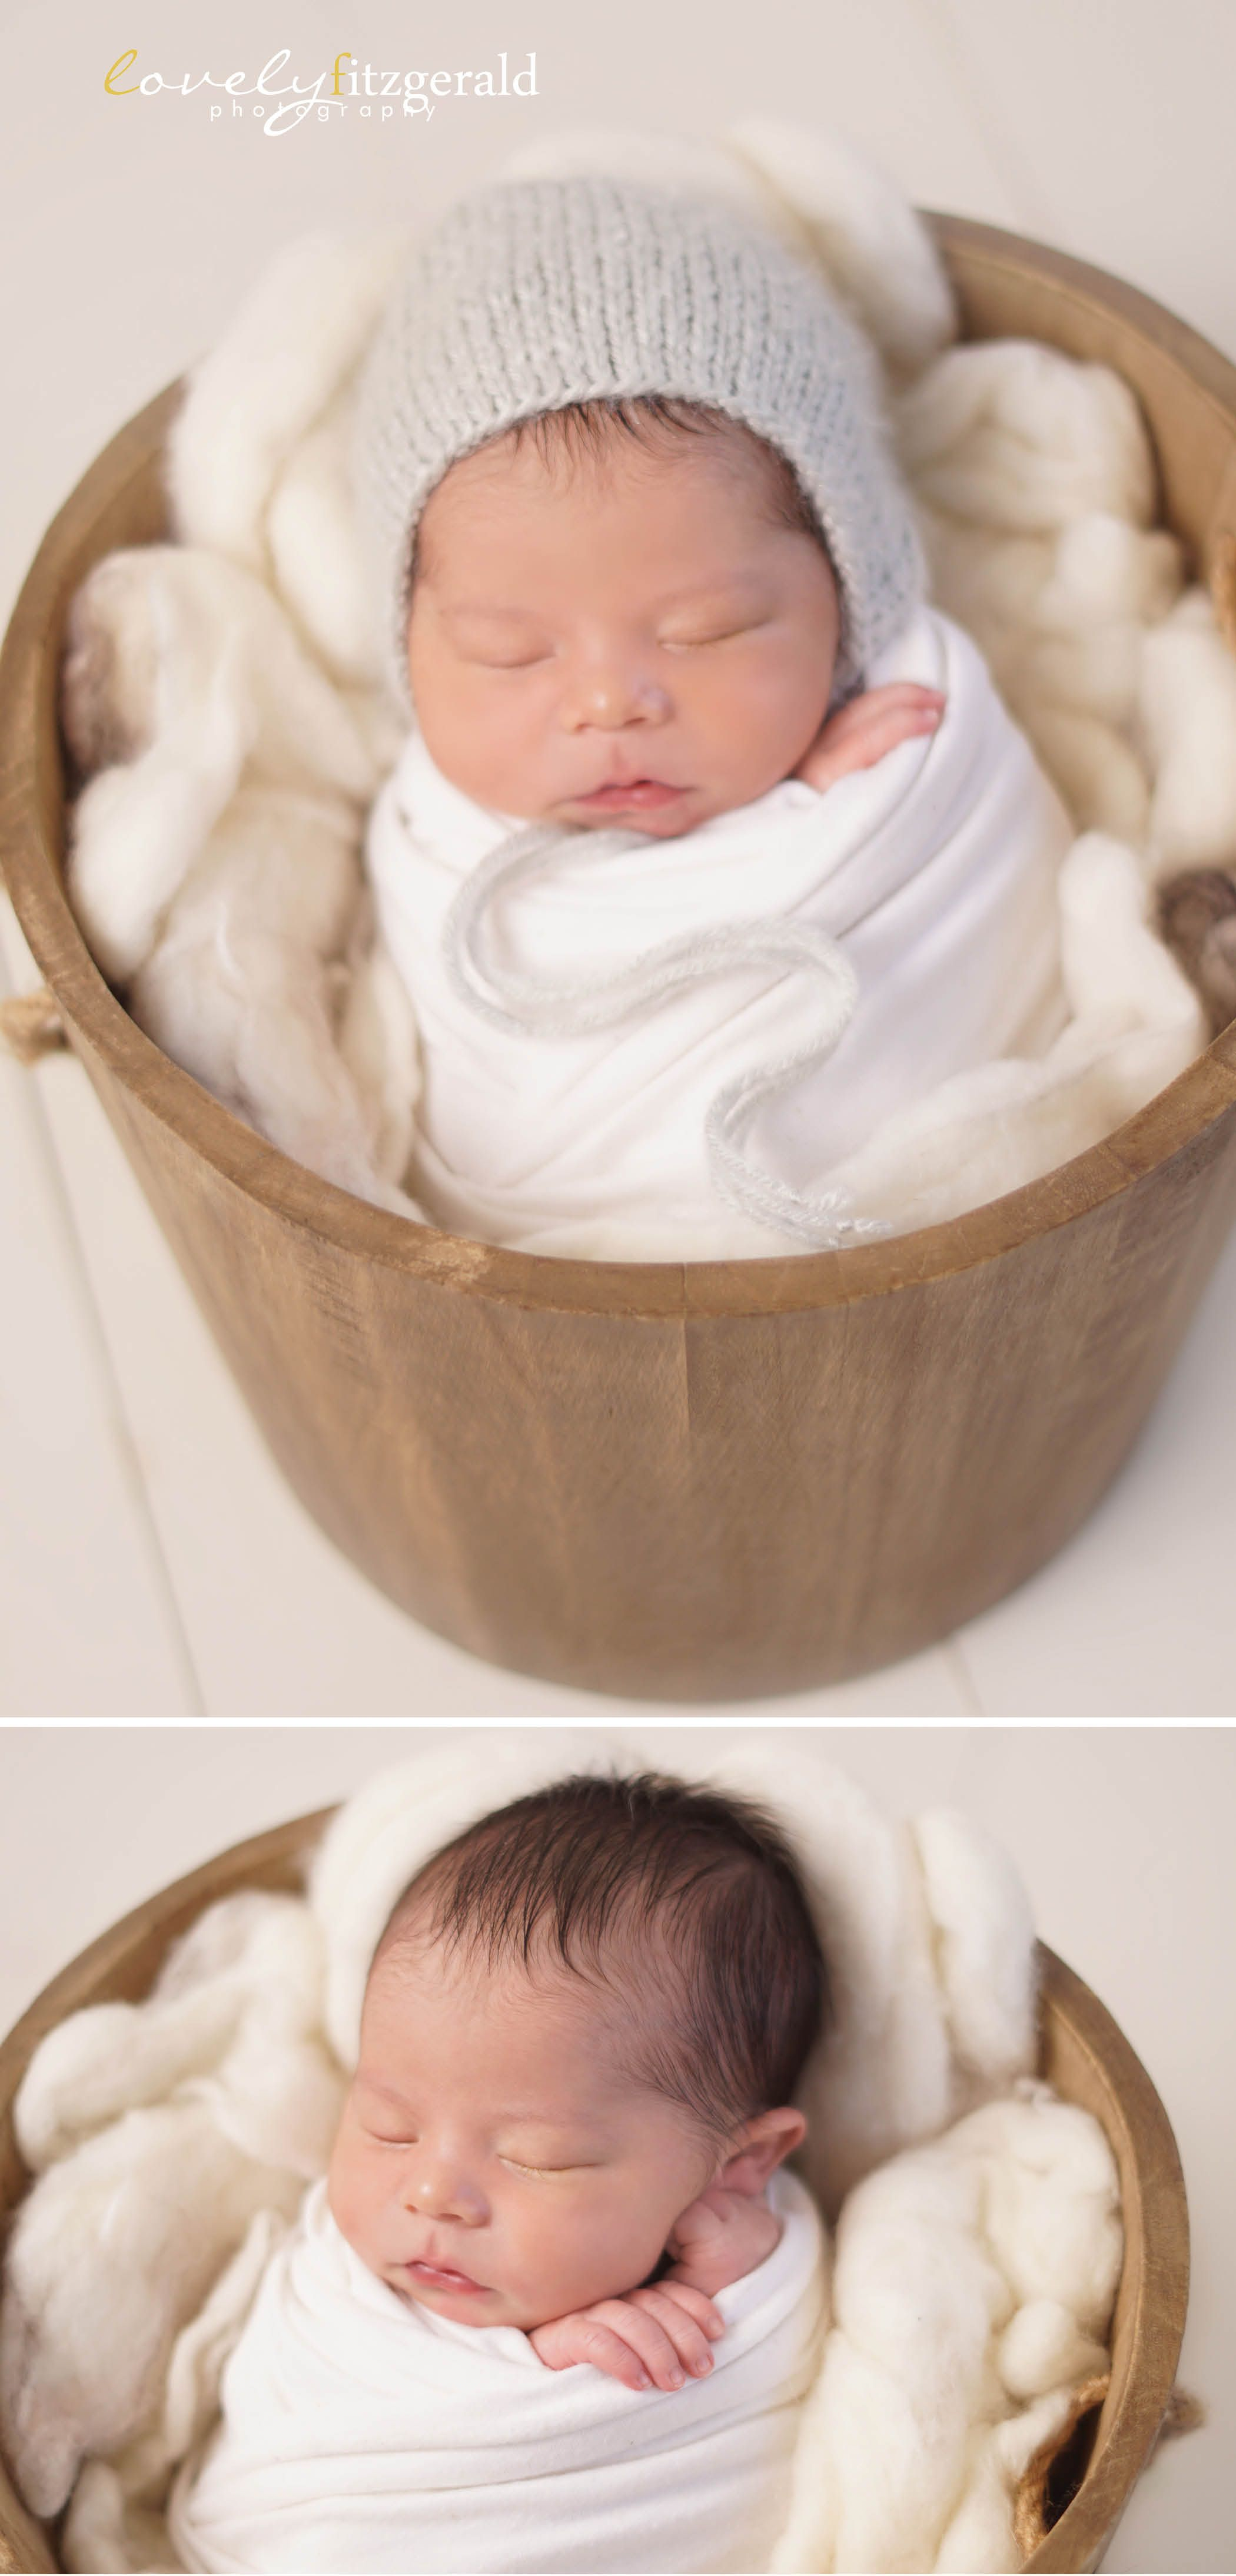 Accessories Newborn Baby Photography Moon Bed Props Baby Girl Boy Photo Shoot Handmade White Solid Wood Basket Bebe Foto Shooting Stuff Fashionable And Attractive Packages